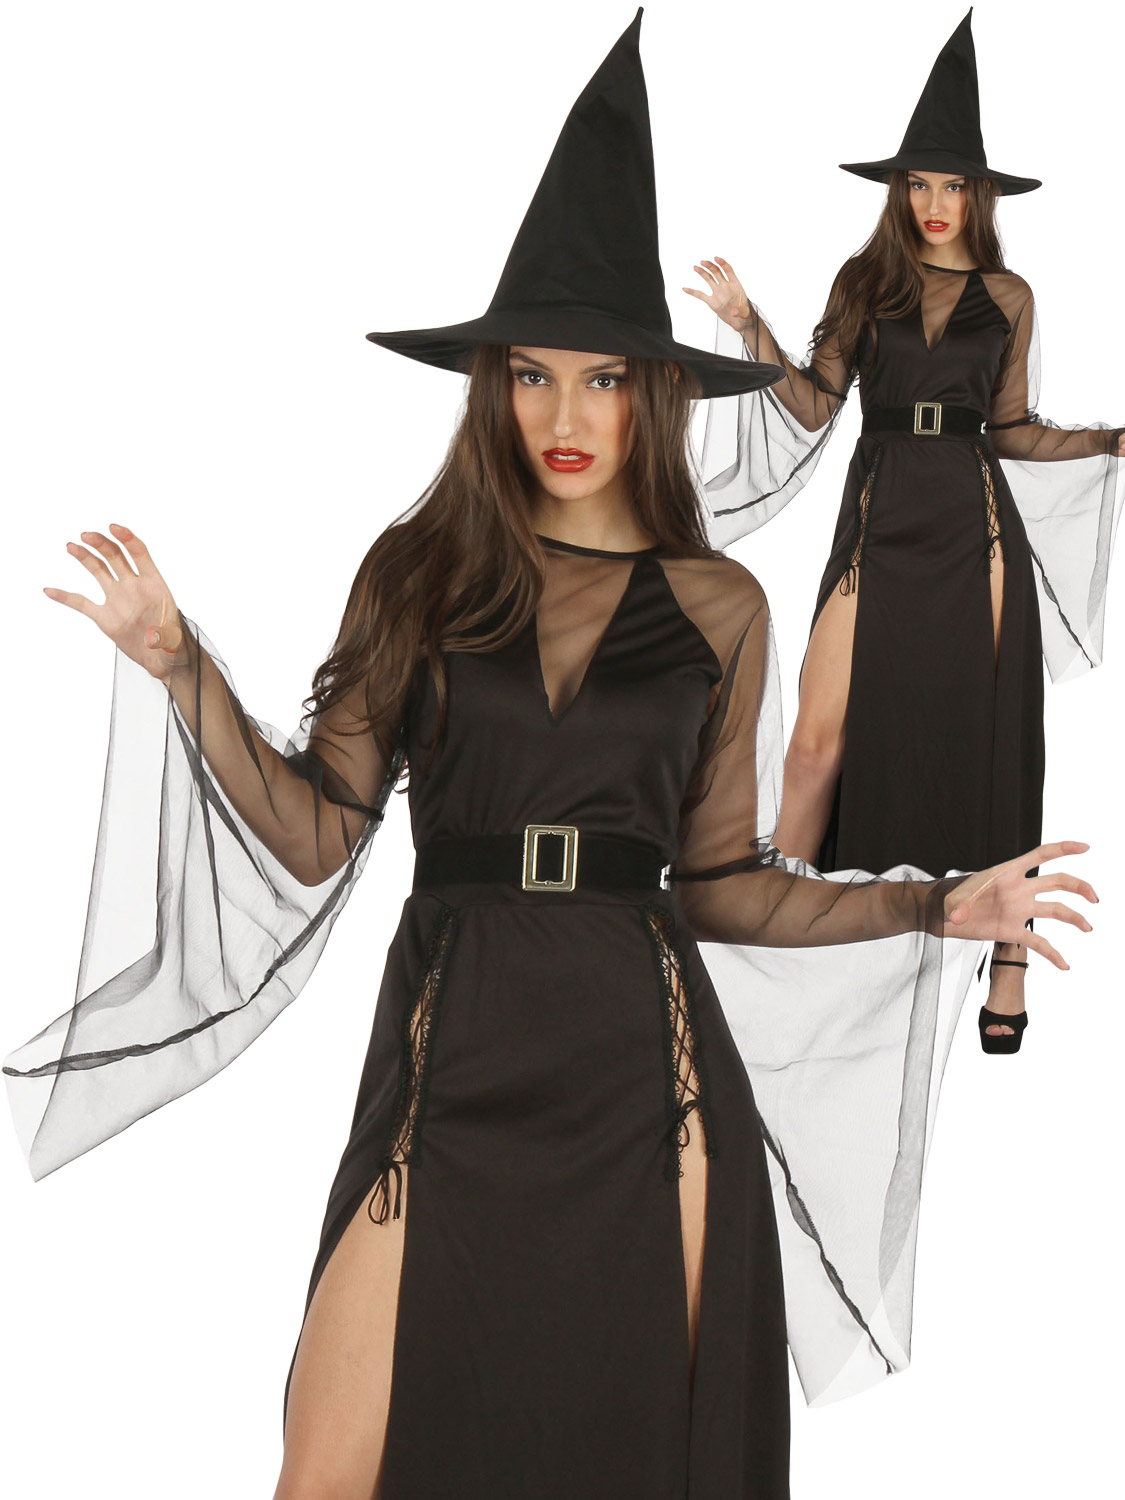 bf51e97f57e Details about Ladies Sexy Witch Costume Adults Halloween Sorceress Wicked  Fancy Dress Outfit